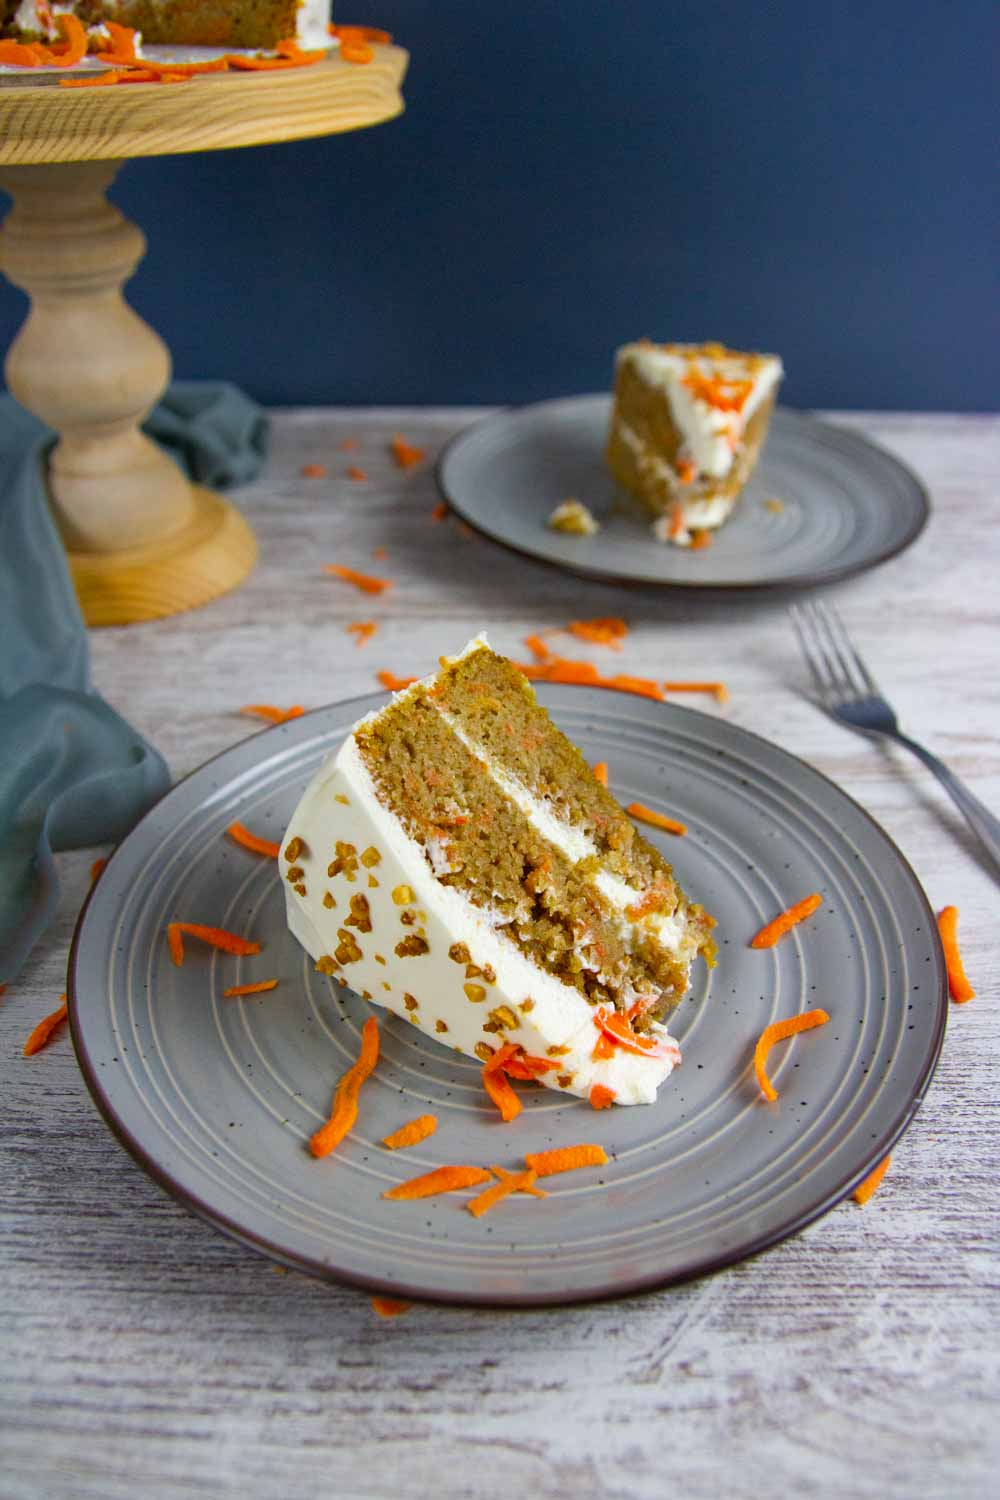 Keto Carrot Cake with Cream Cheese Frosting is perfectly moist and delicious, made with lots of fresh carrots, and topped with the most heavenly cream cheese frosting. #easter #easterrecipes #carrotcake #ketodessert #ketocake #lowcarb